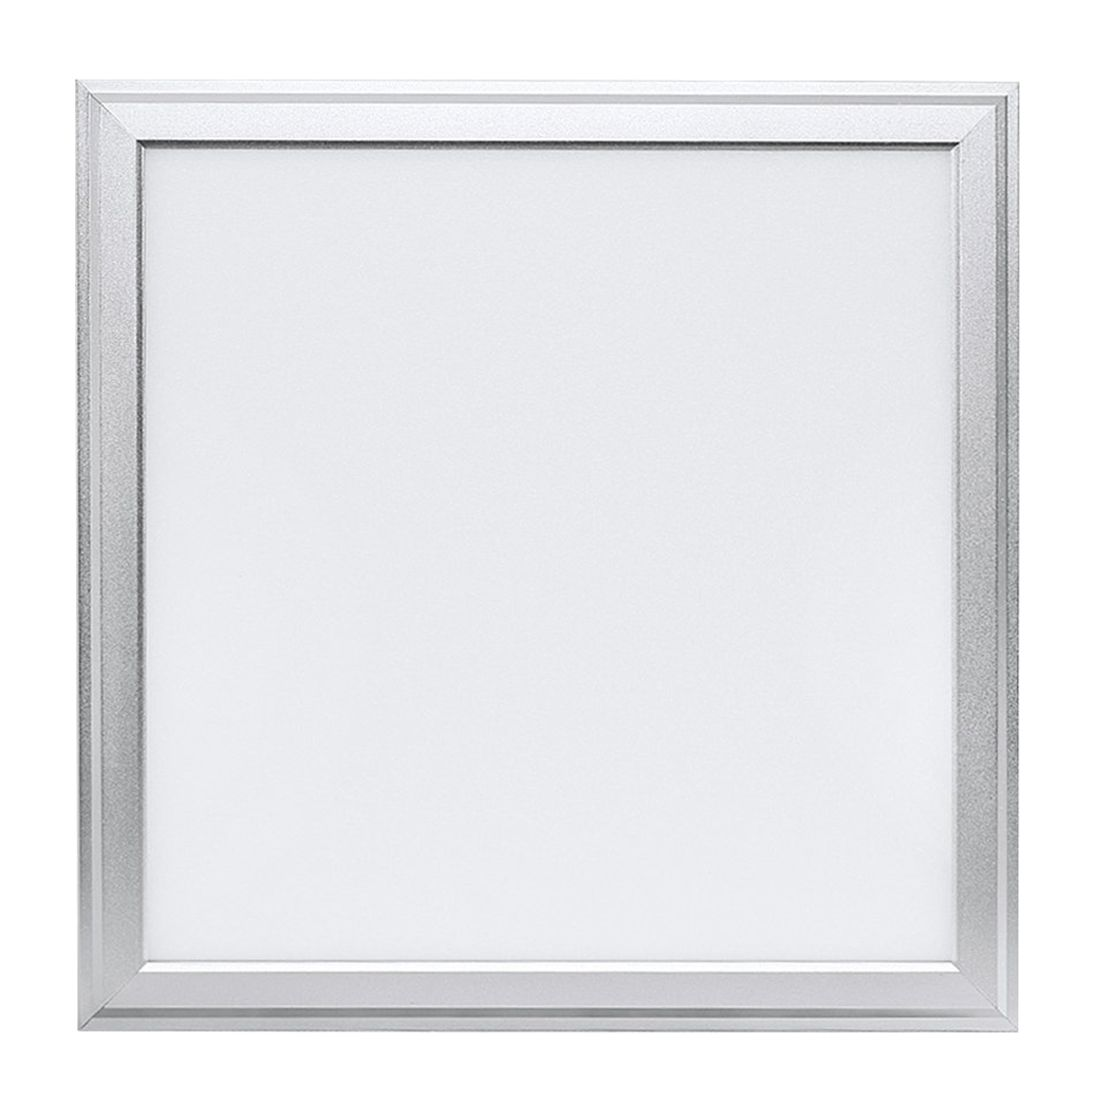 LED 600X600 54W Equal to 160W Fluorescent Bulb (6500K) Ultraslim Square Ceiling Panel Lamp Light with Aluminum Frame 2color lo not equal пиджак